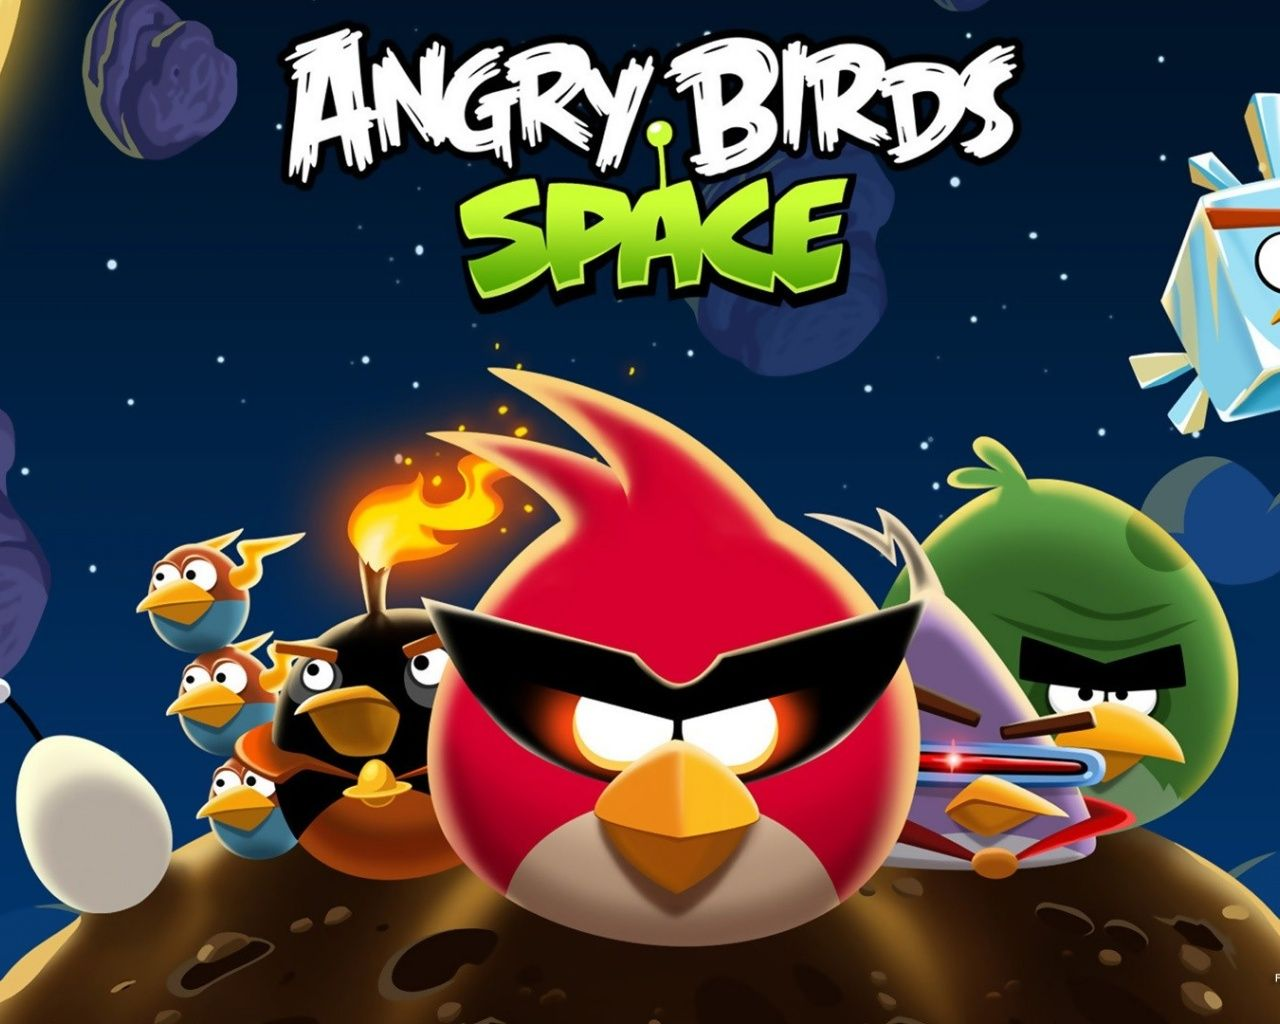 angry birds space hd wallpapers | wallpapers catalog | pinterest